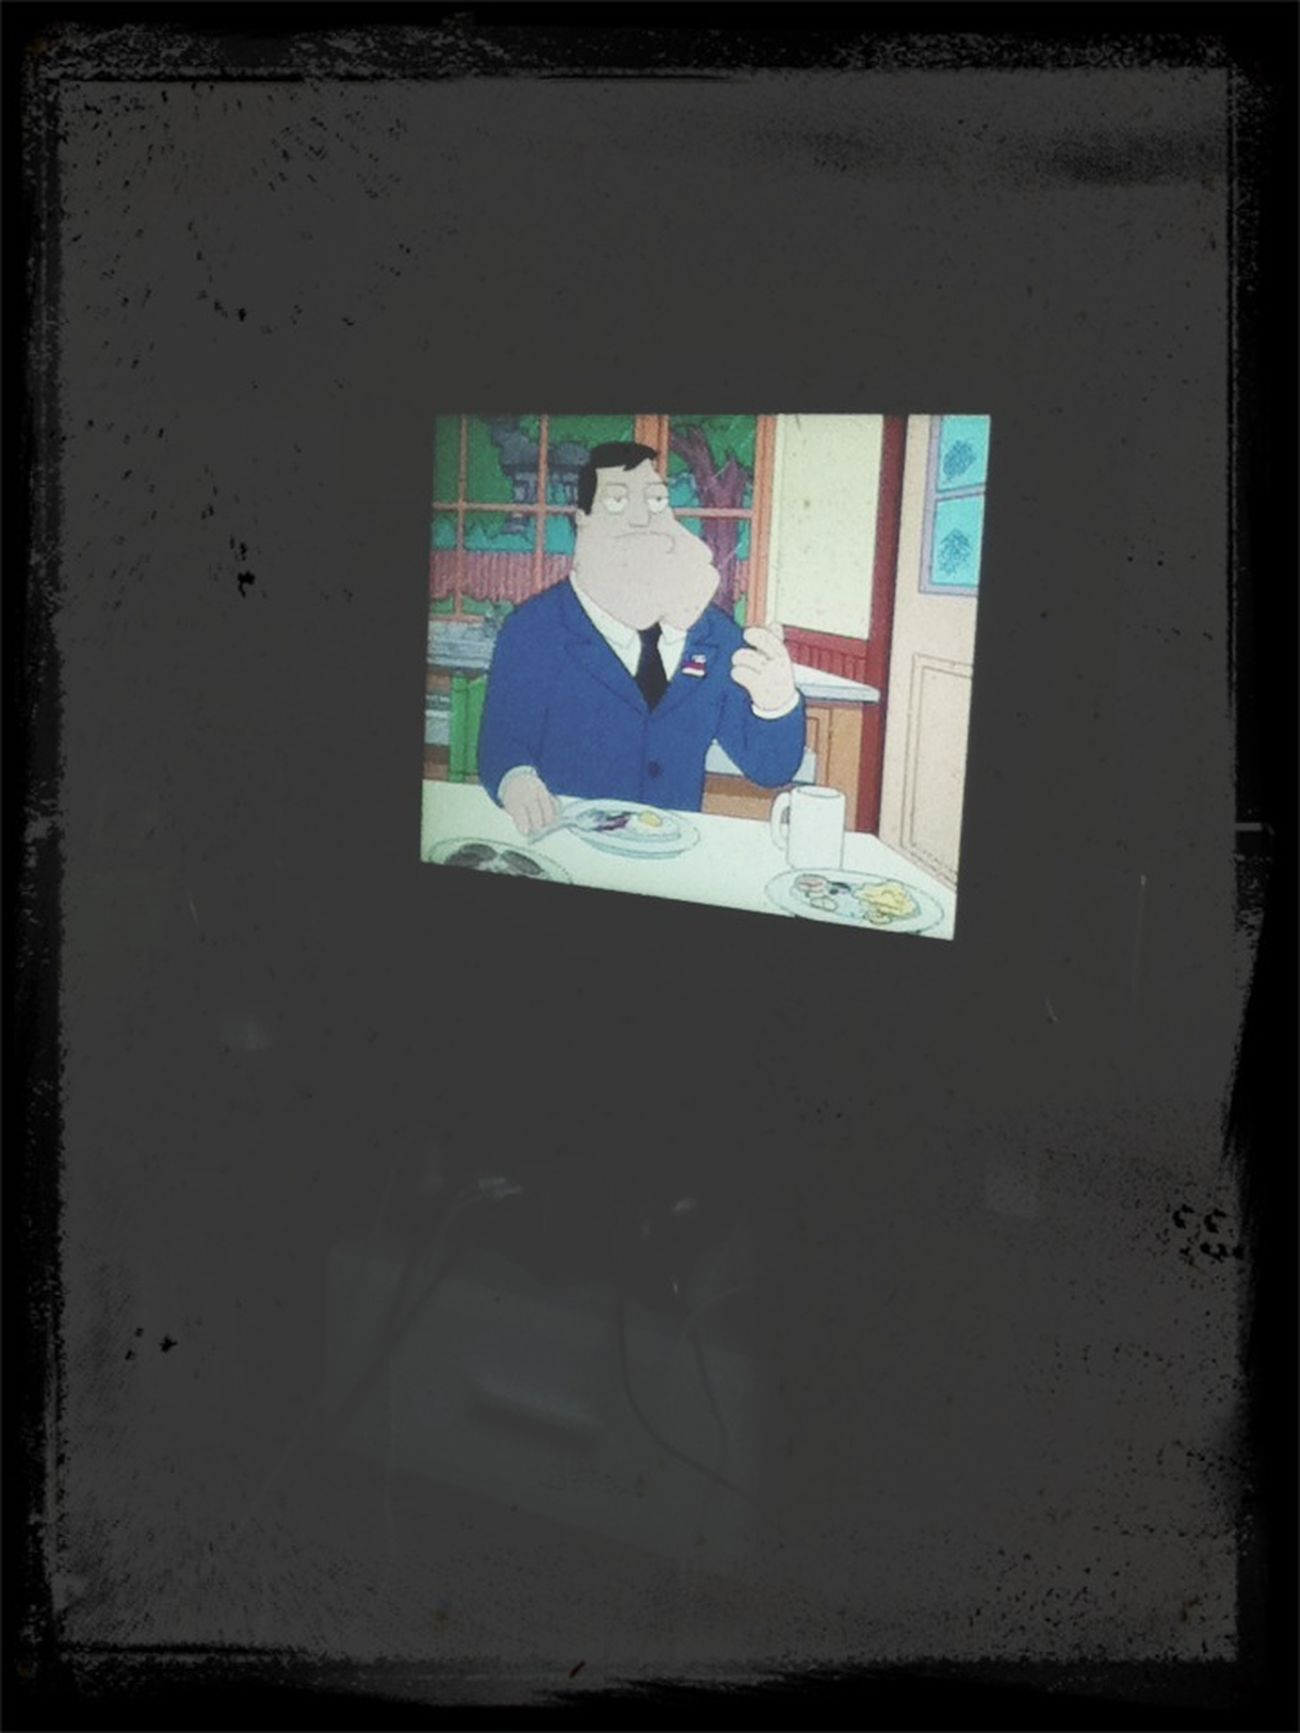 Looking American Dad with my friends.